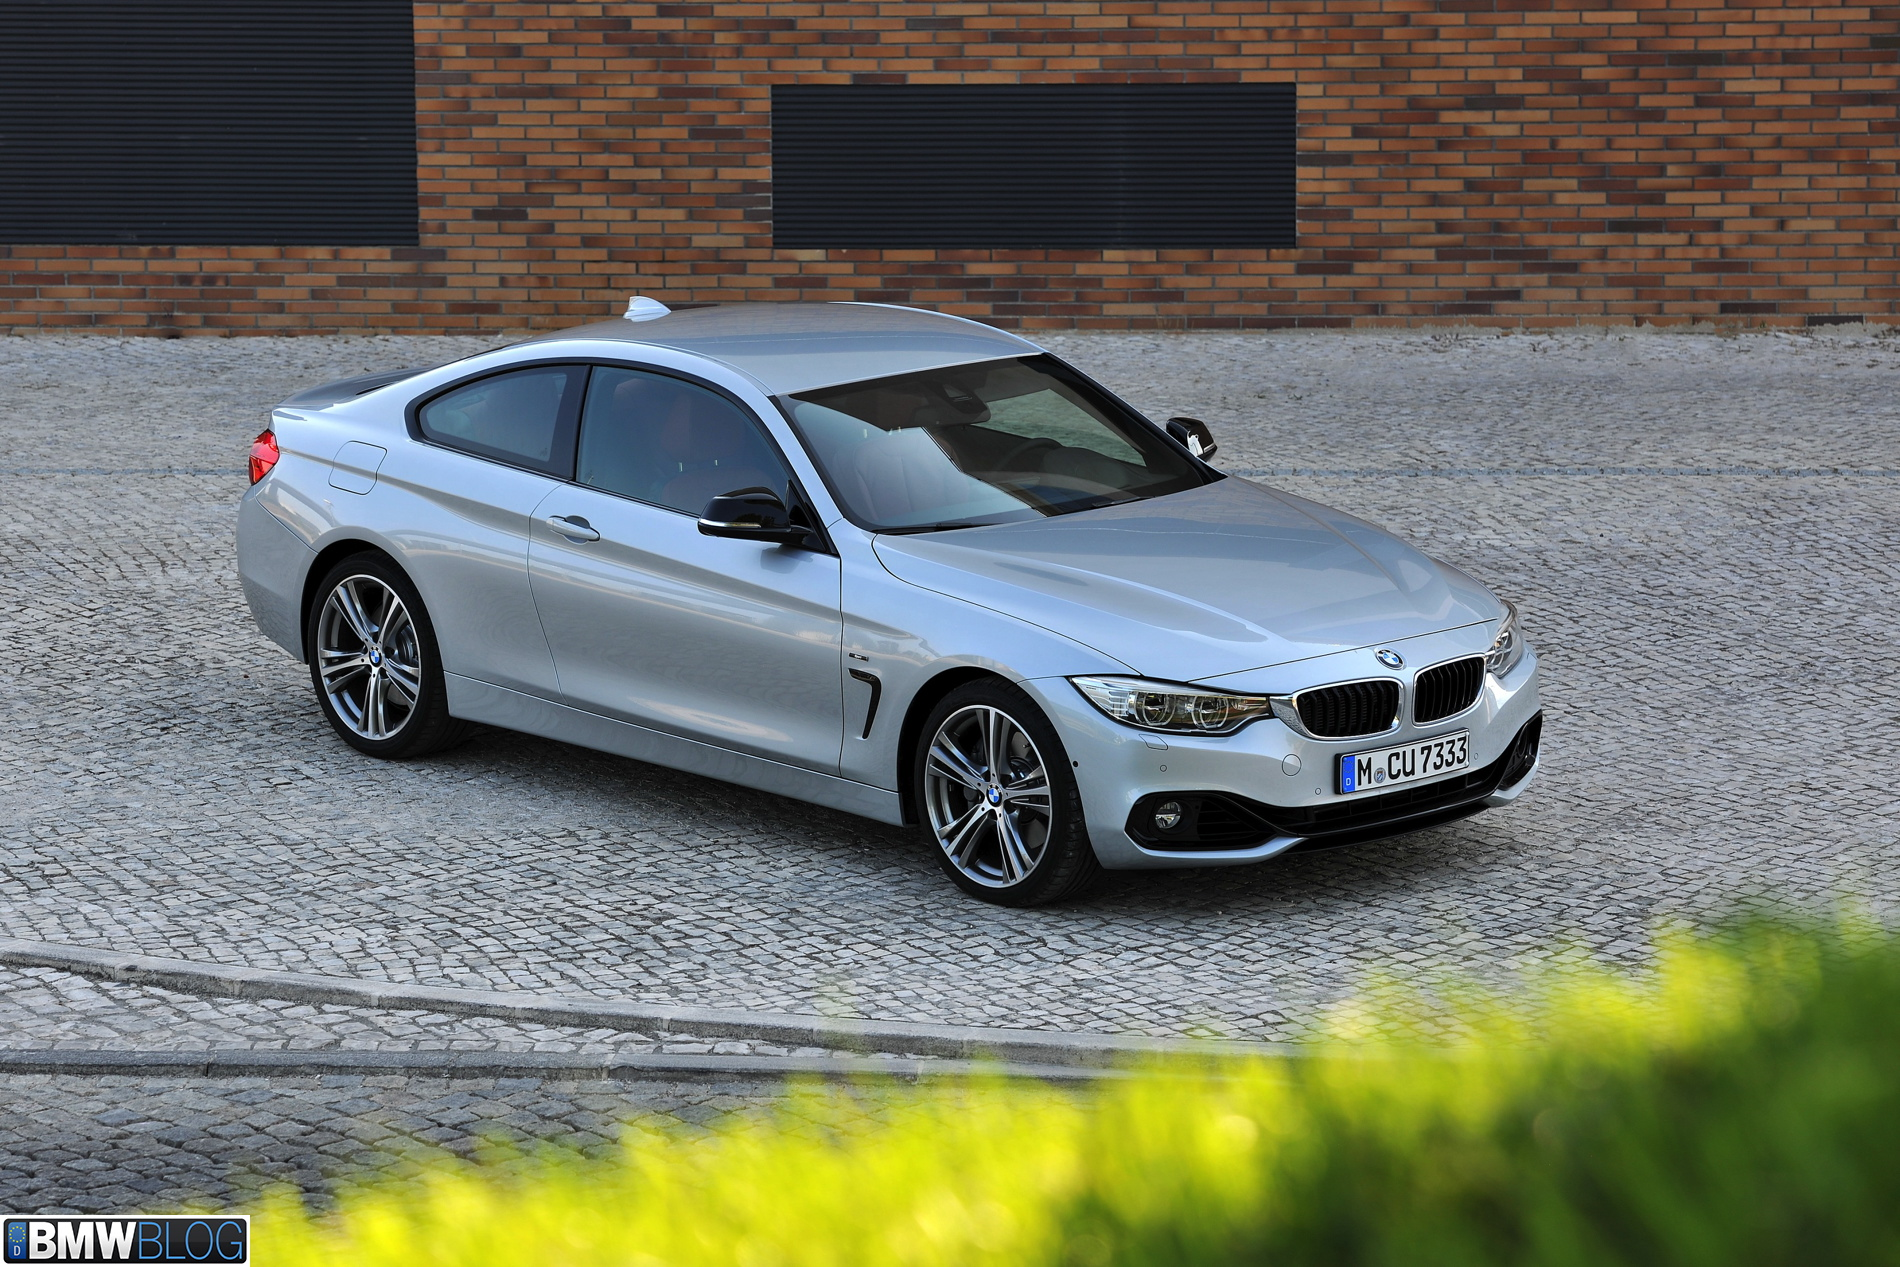 bmw 435i coupe images 181